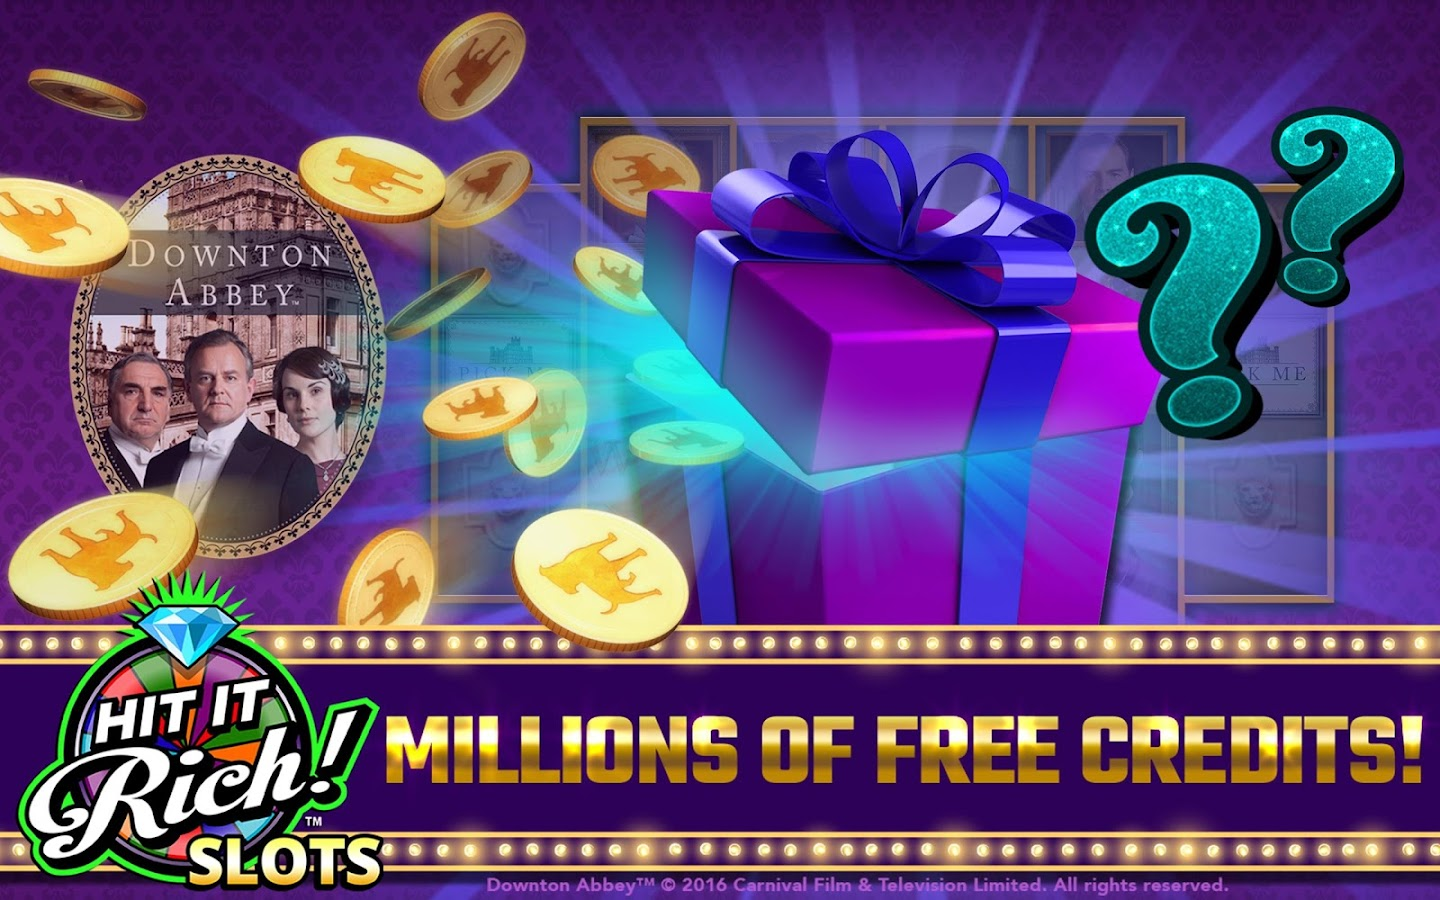 hit it rich casino slots app